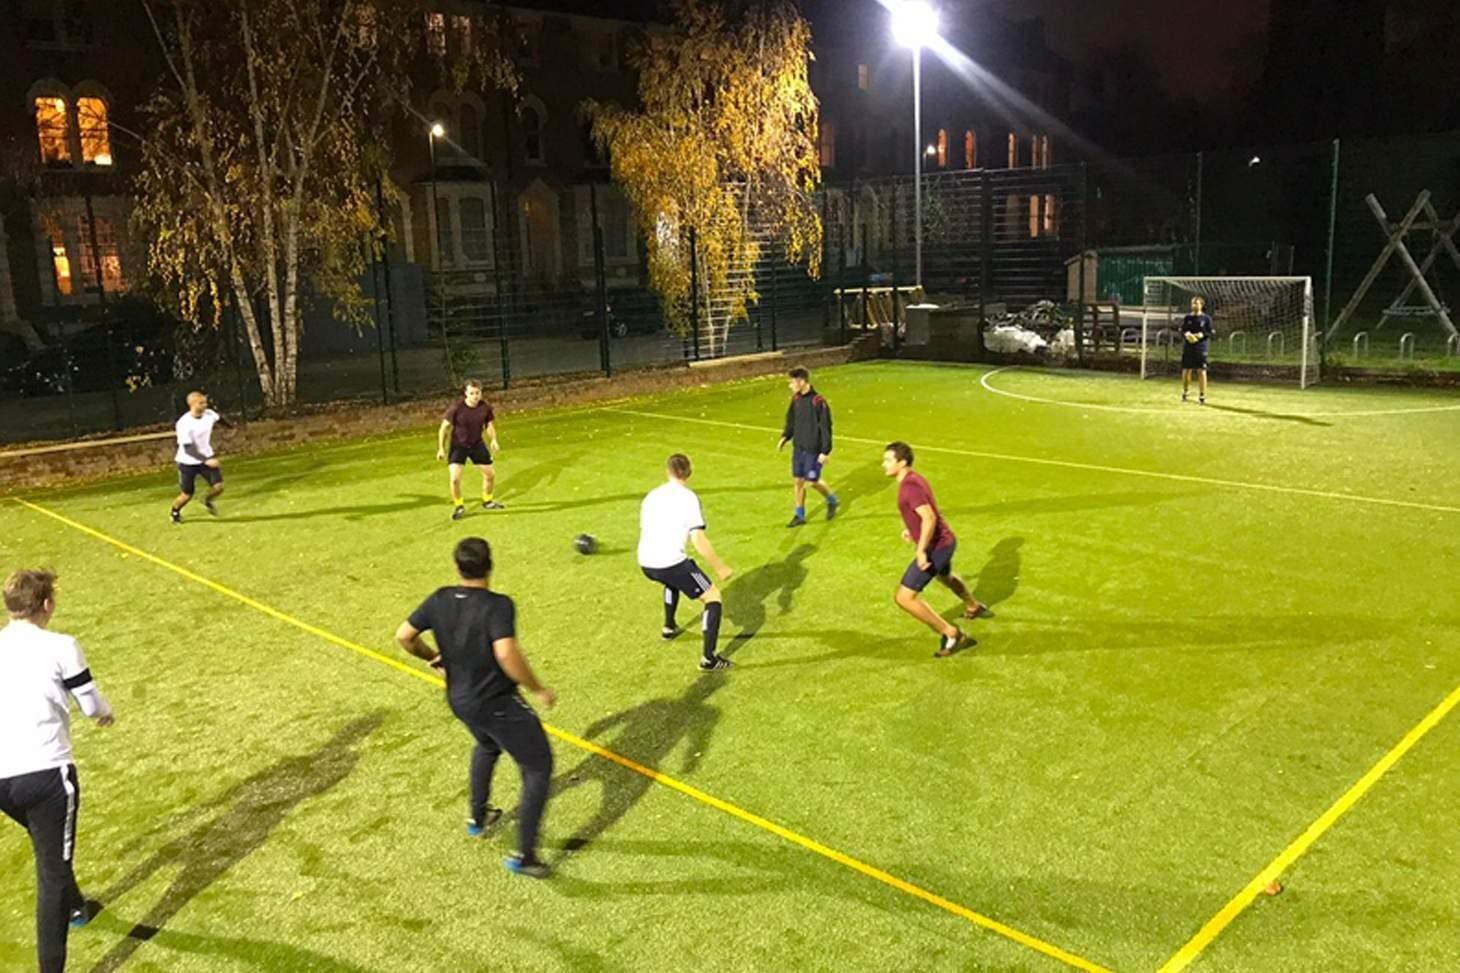 Max Roach Adventure Playground 3 a side | 3G Astroturf football pitch